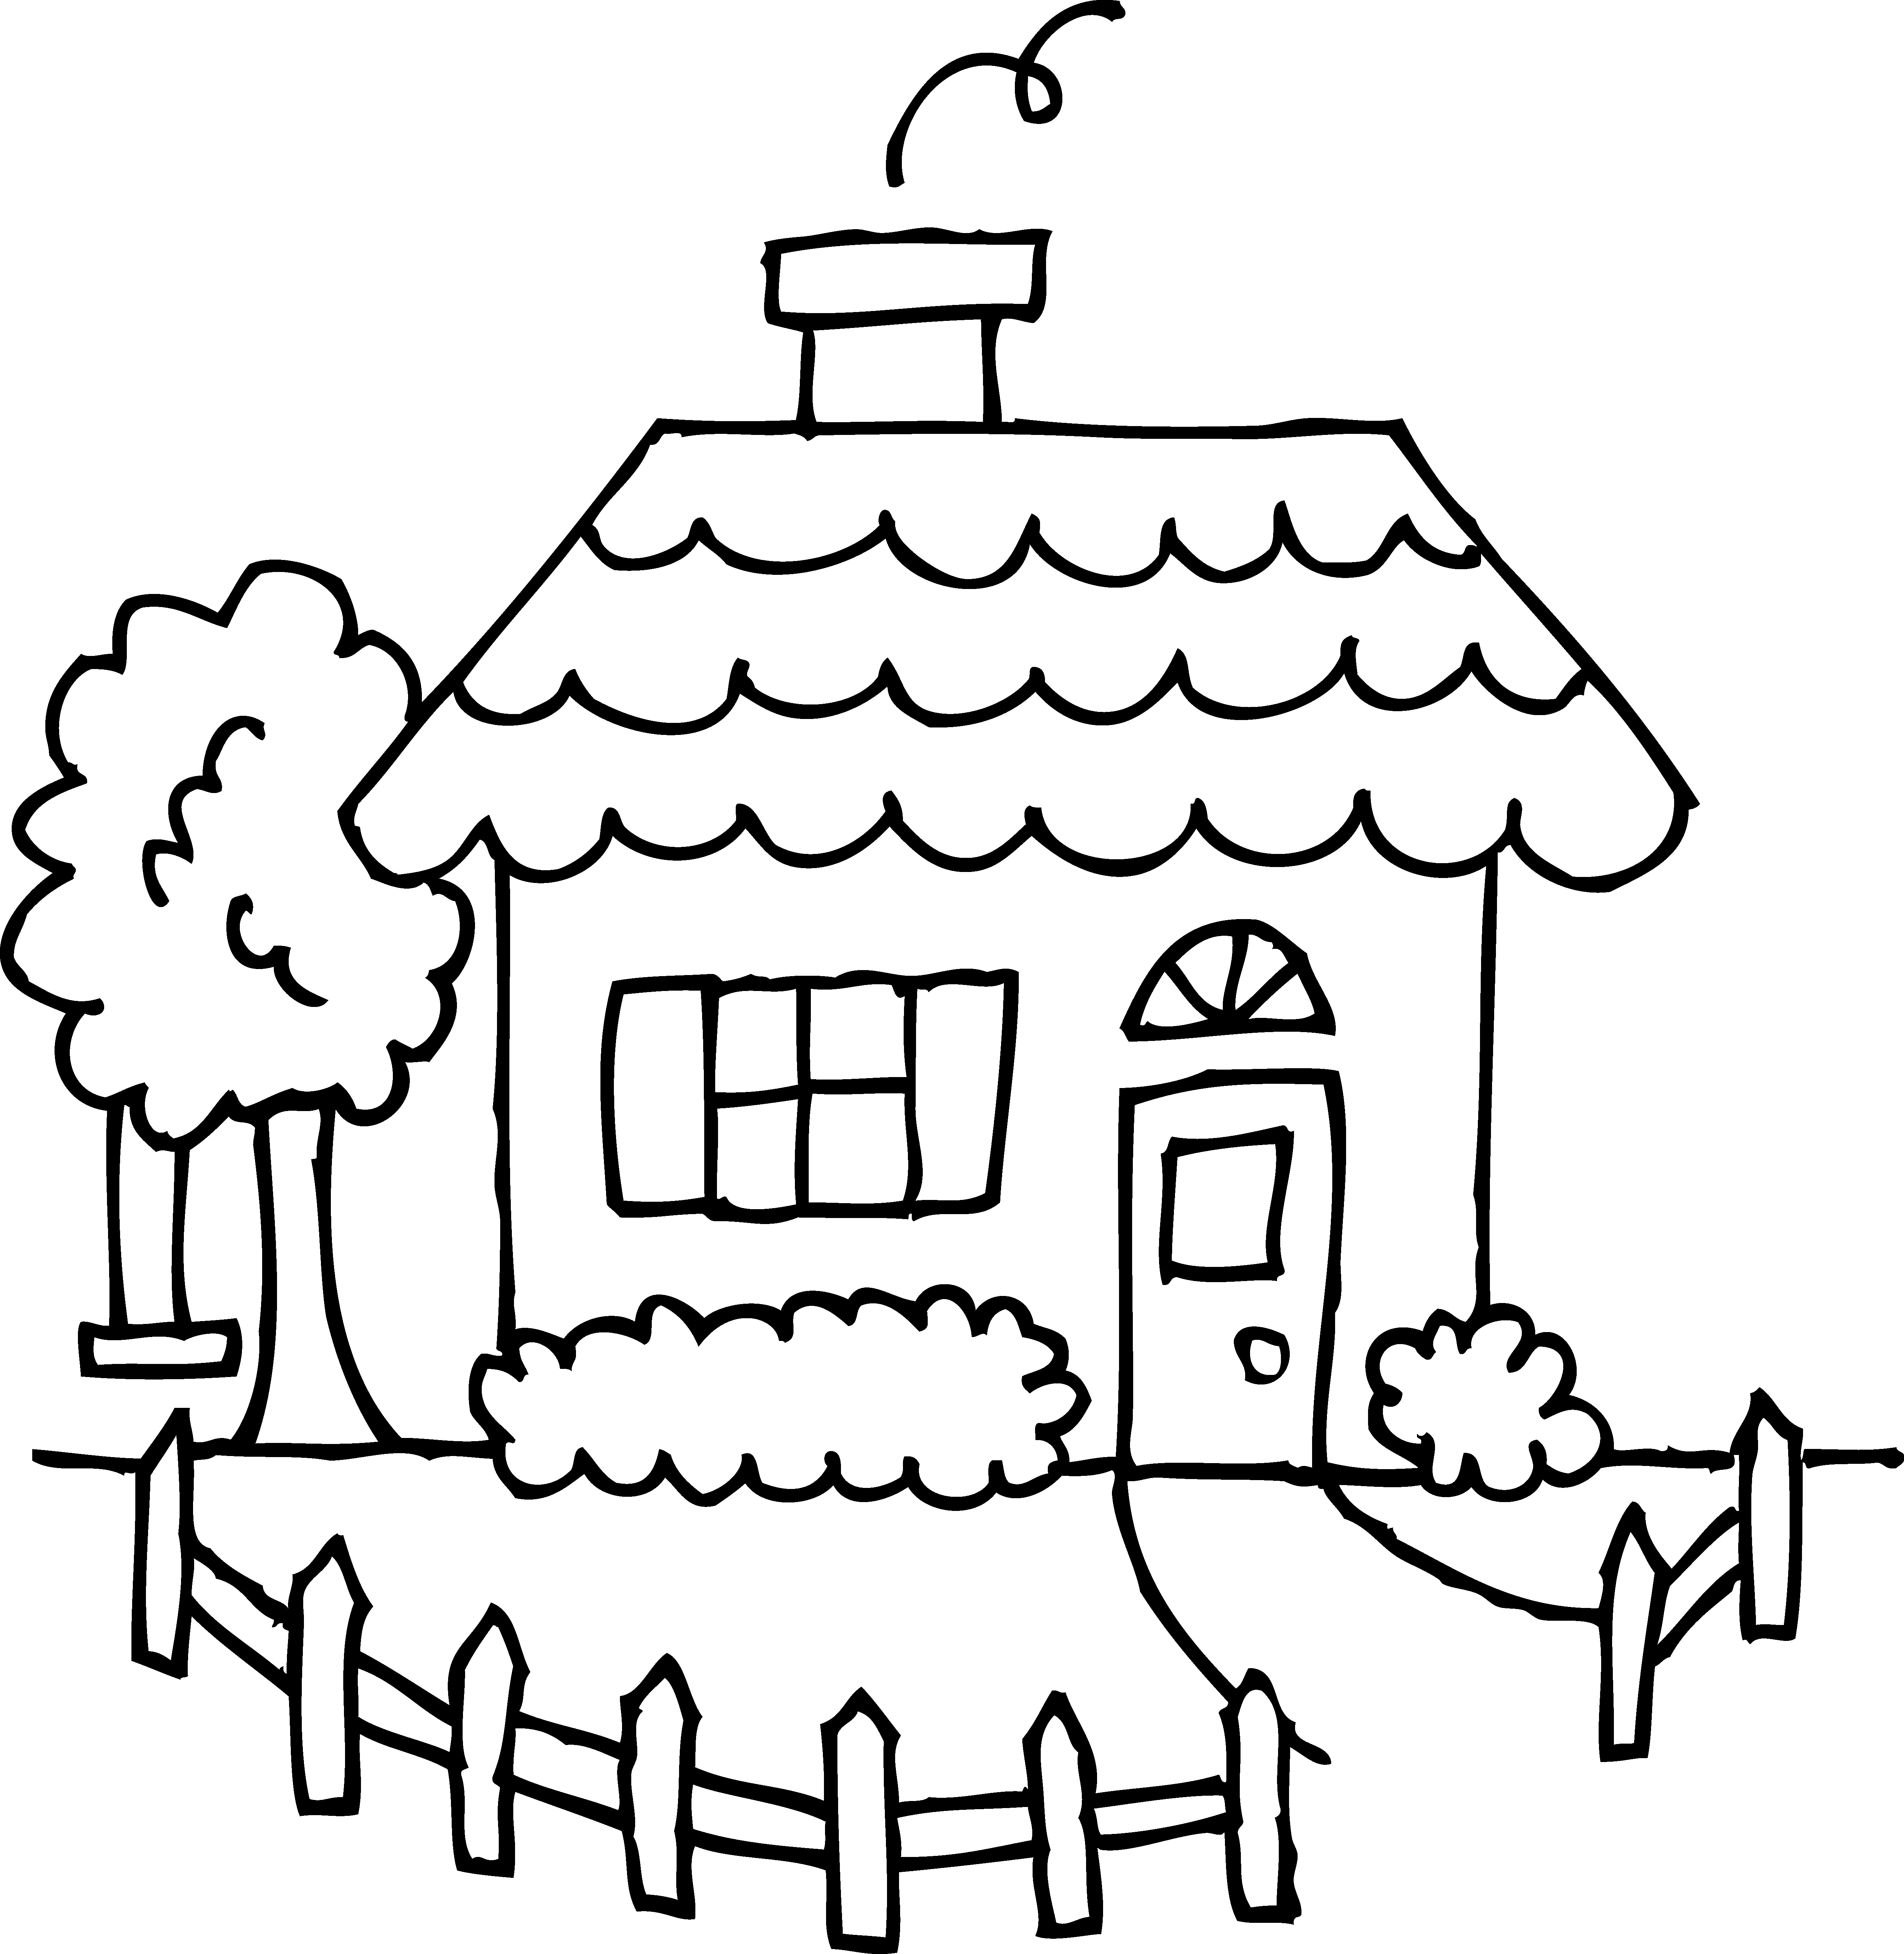 Free images house.